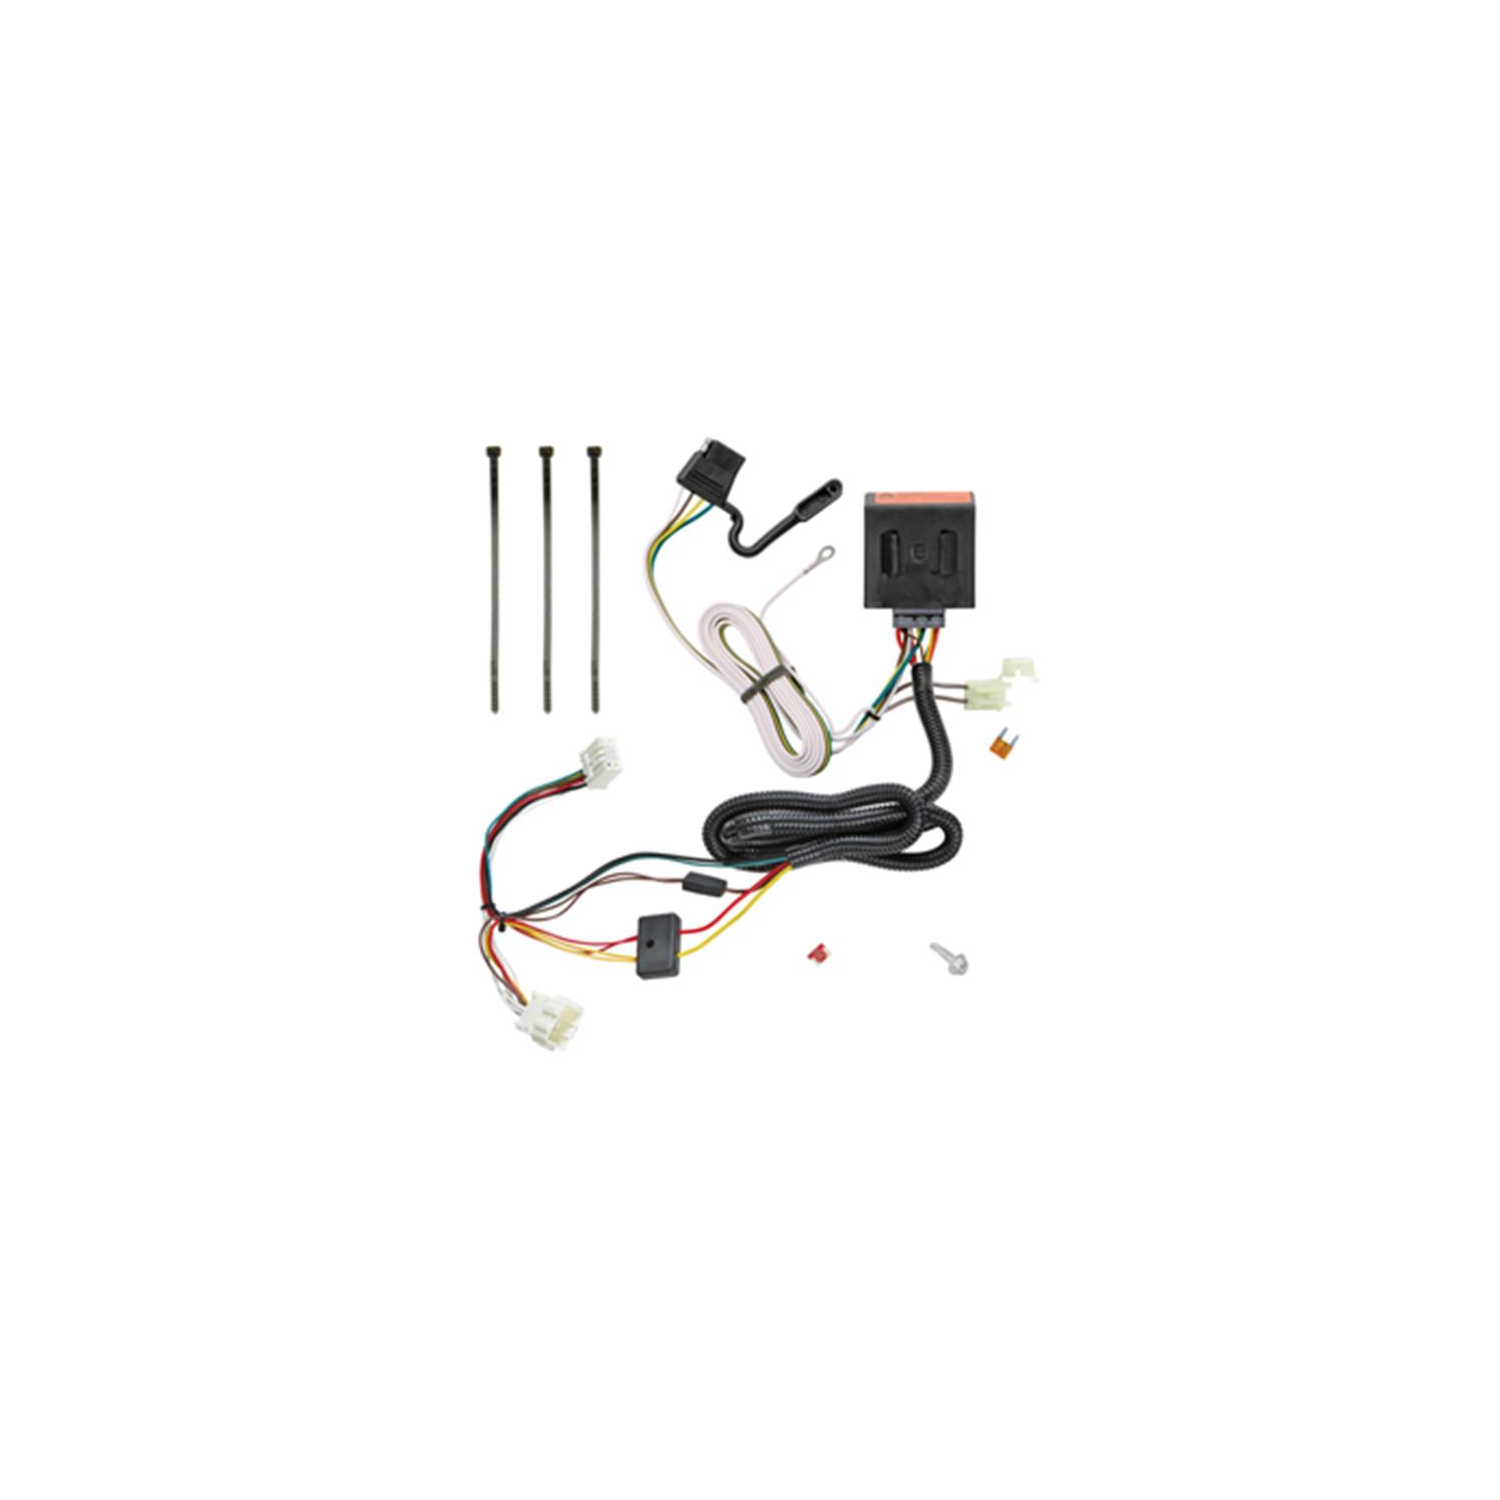 Tow Ready 118561 T One Connector Assembly With Upgraded Circuit Taillight Converter Free Shipping Protected Modulite Module 425 X 550 9 In Other Cables Connectors Best Buy Canada